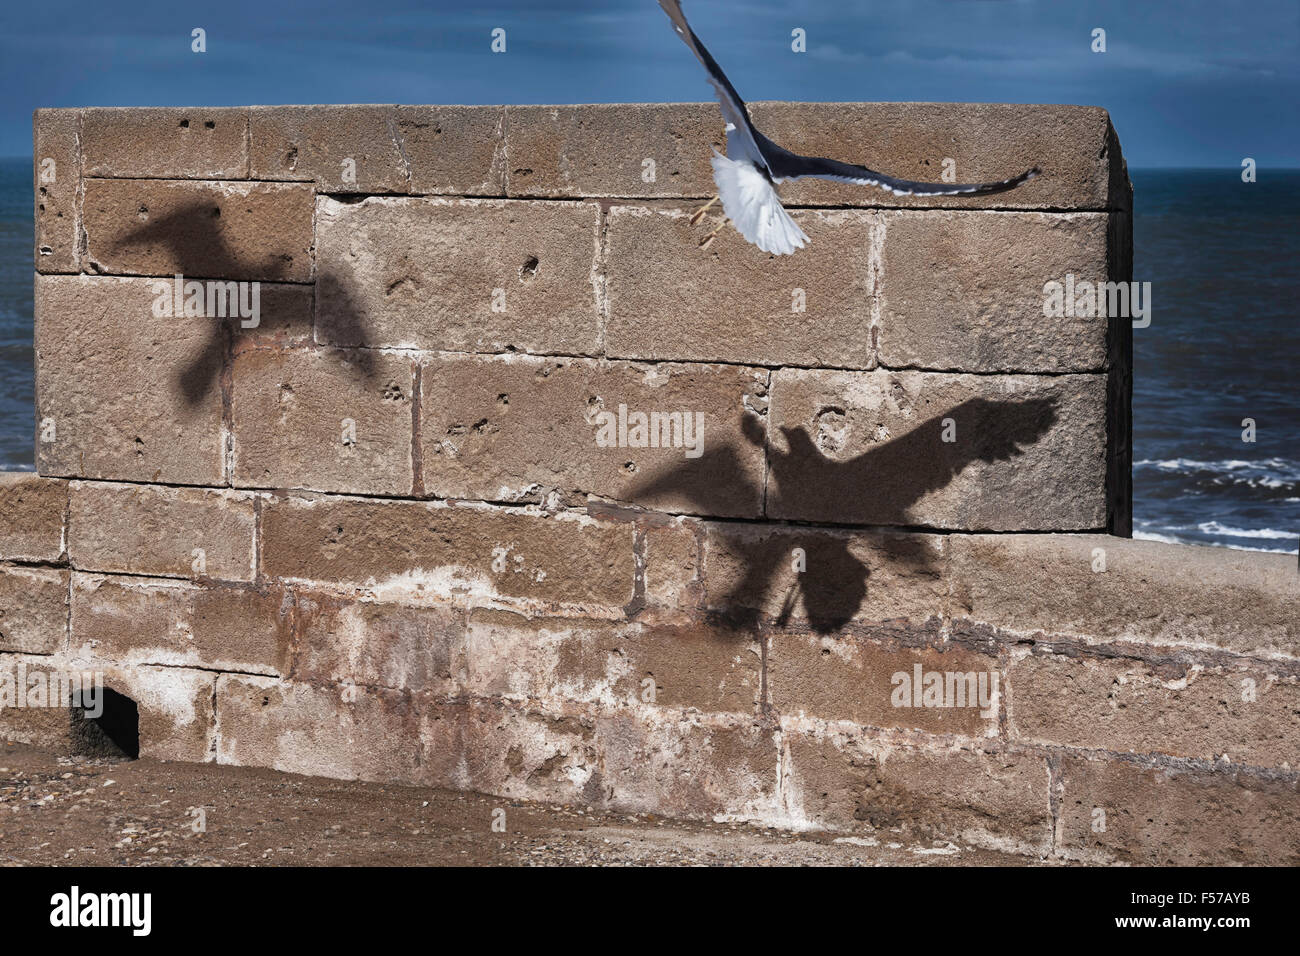 Flying seagull shadows against stone wall. - Stock Image